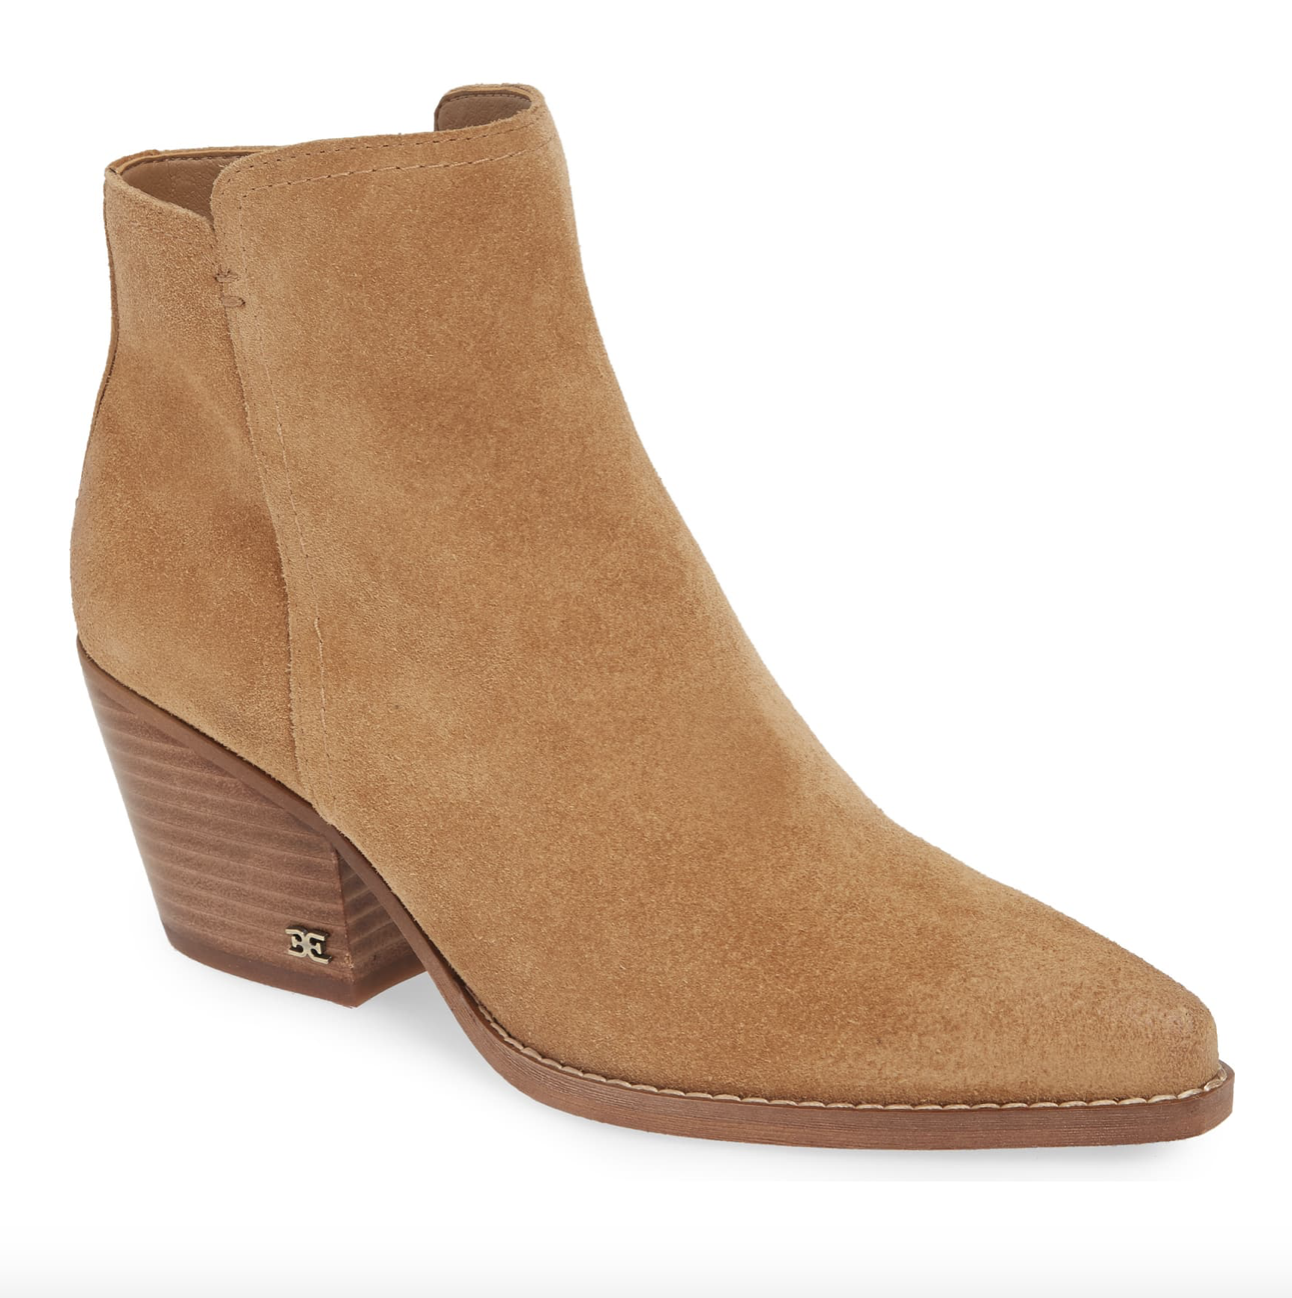 Camel Booties | Nordstrom Anniversary Sale 2019 | A Demure Life Fashion Blog